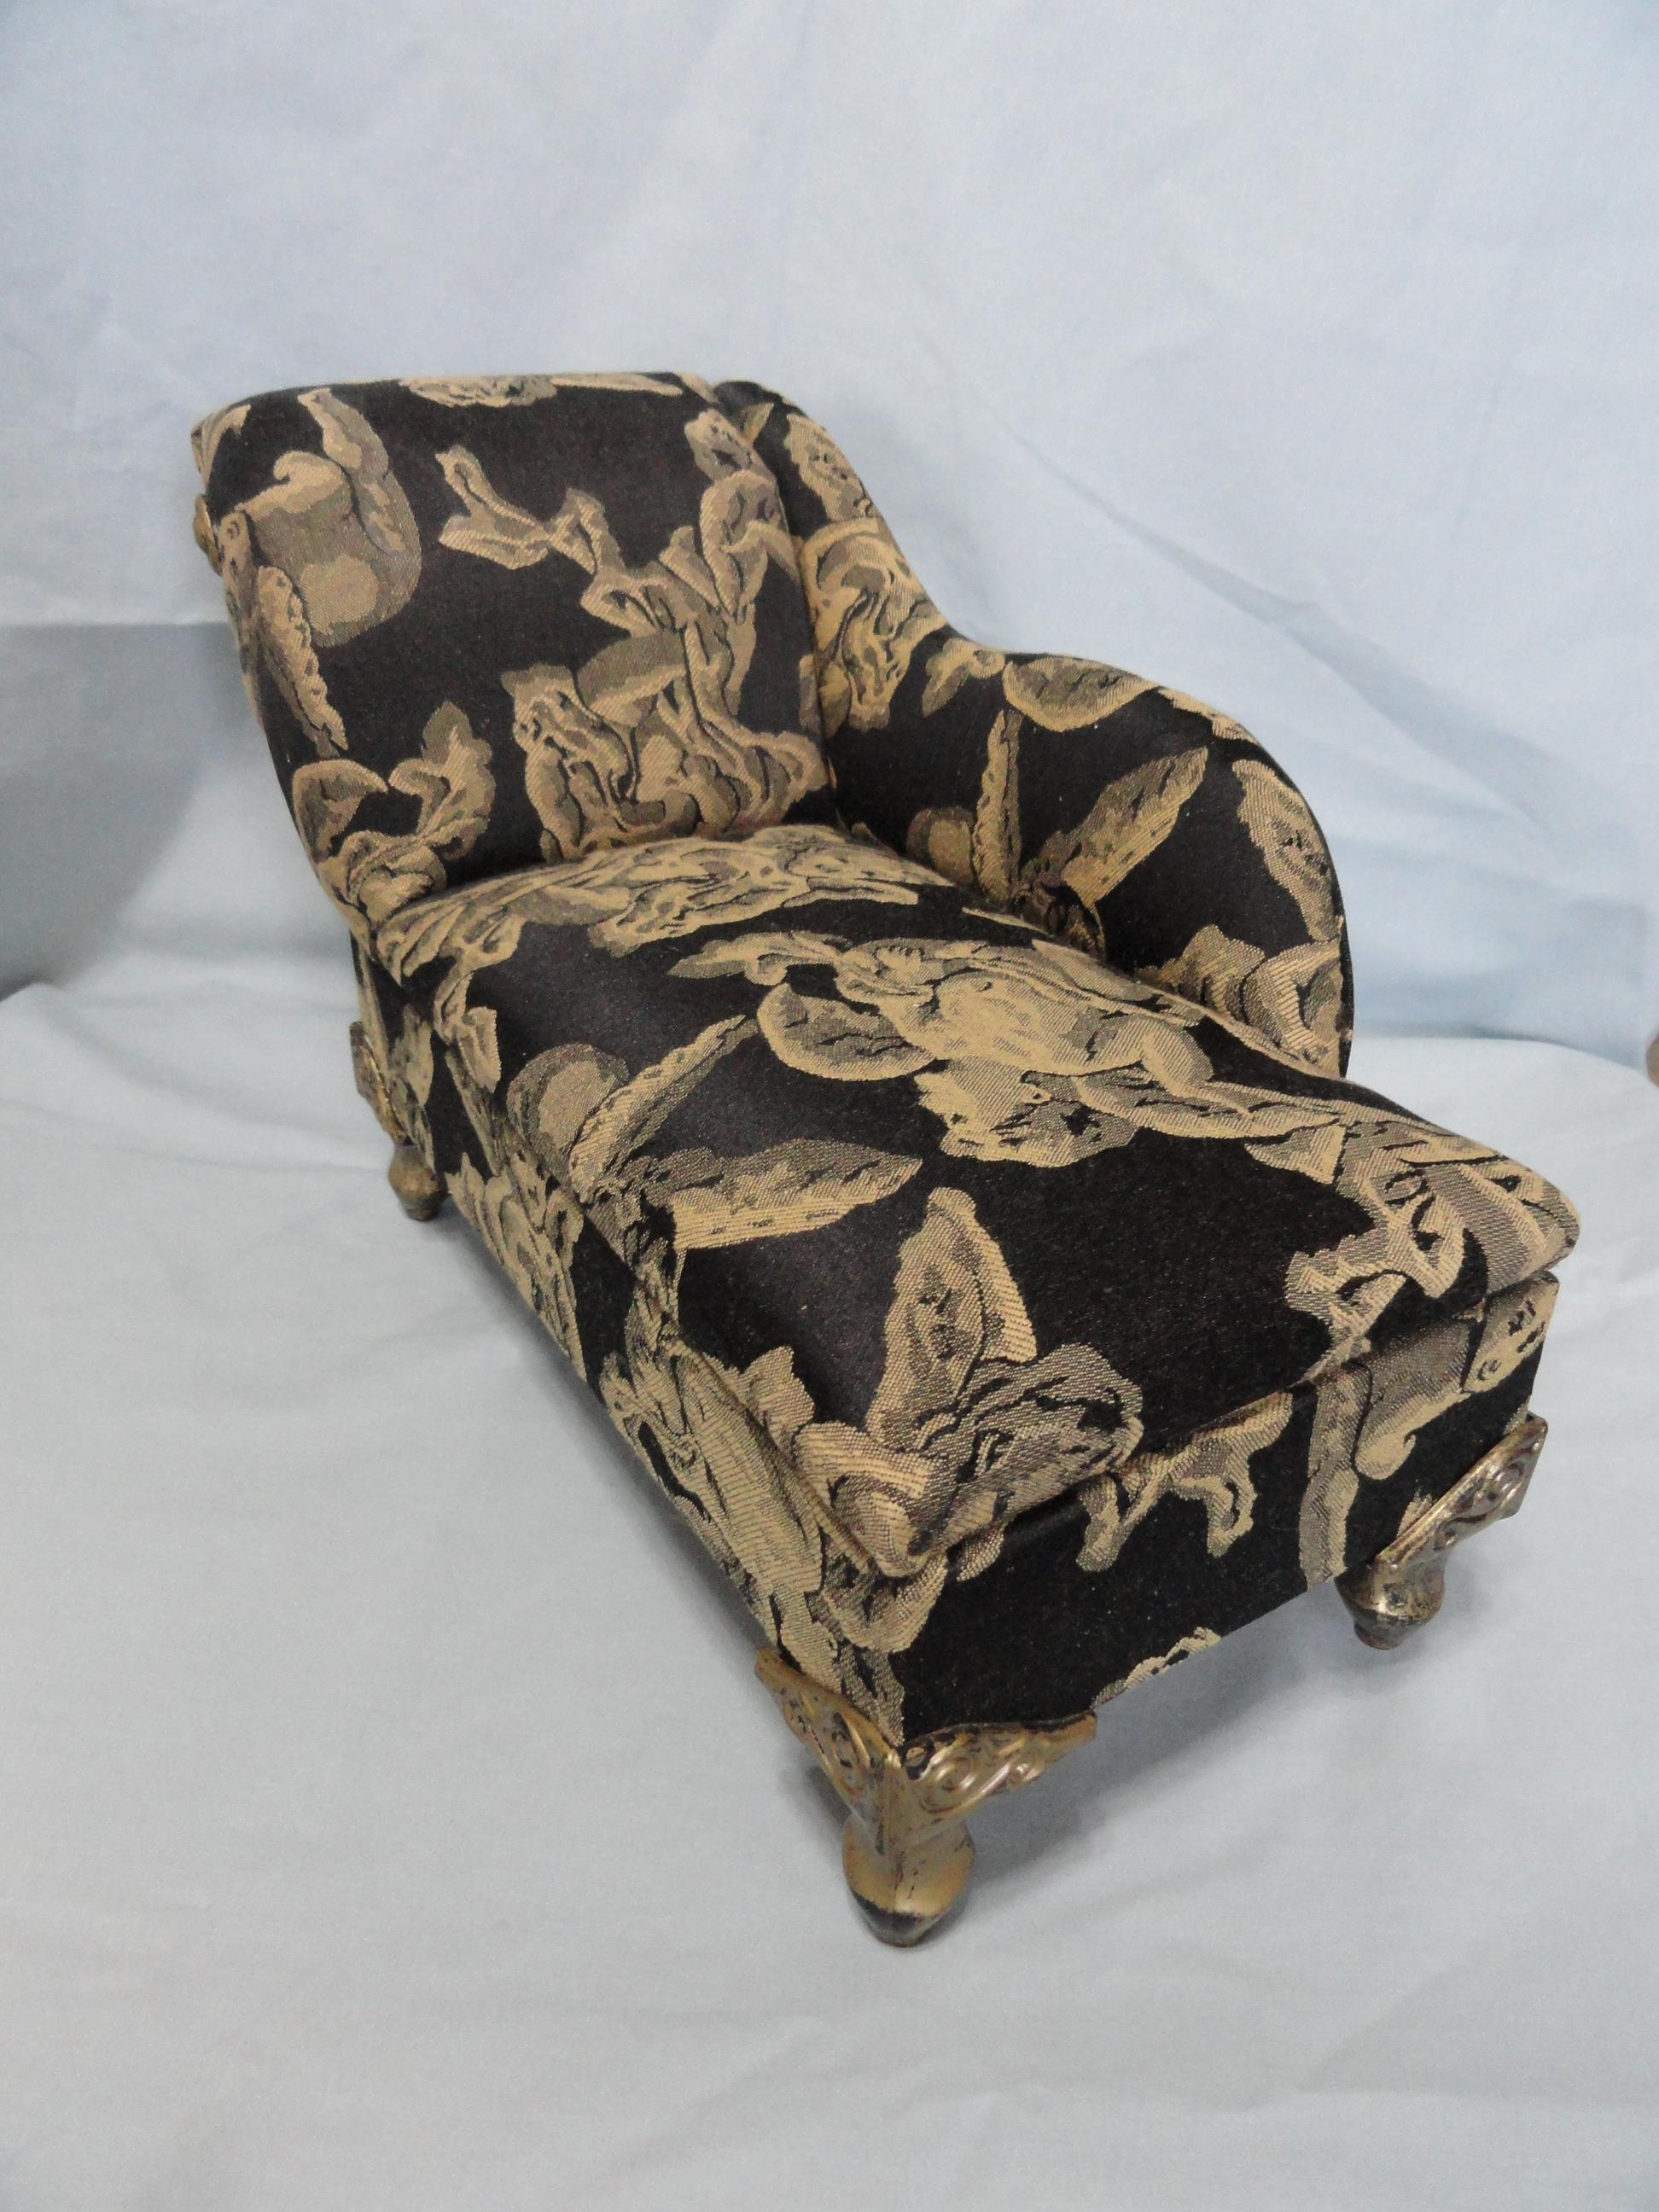 Vintage chaise longue for french fashion upholstered w - Changer toile chaise longue ...